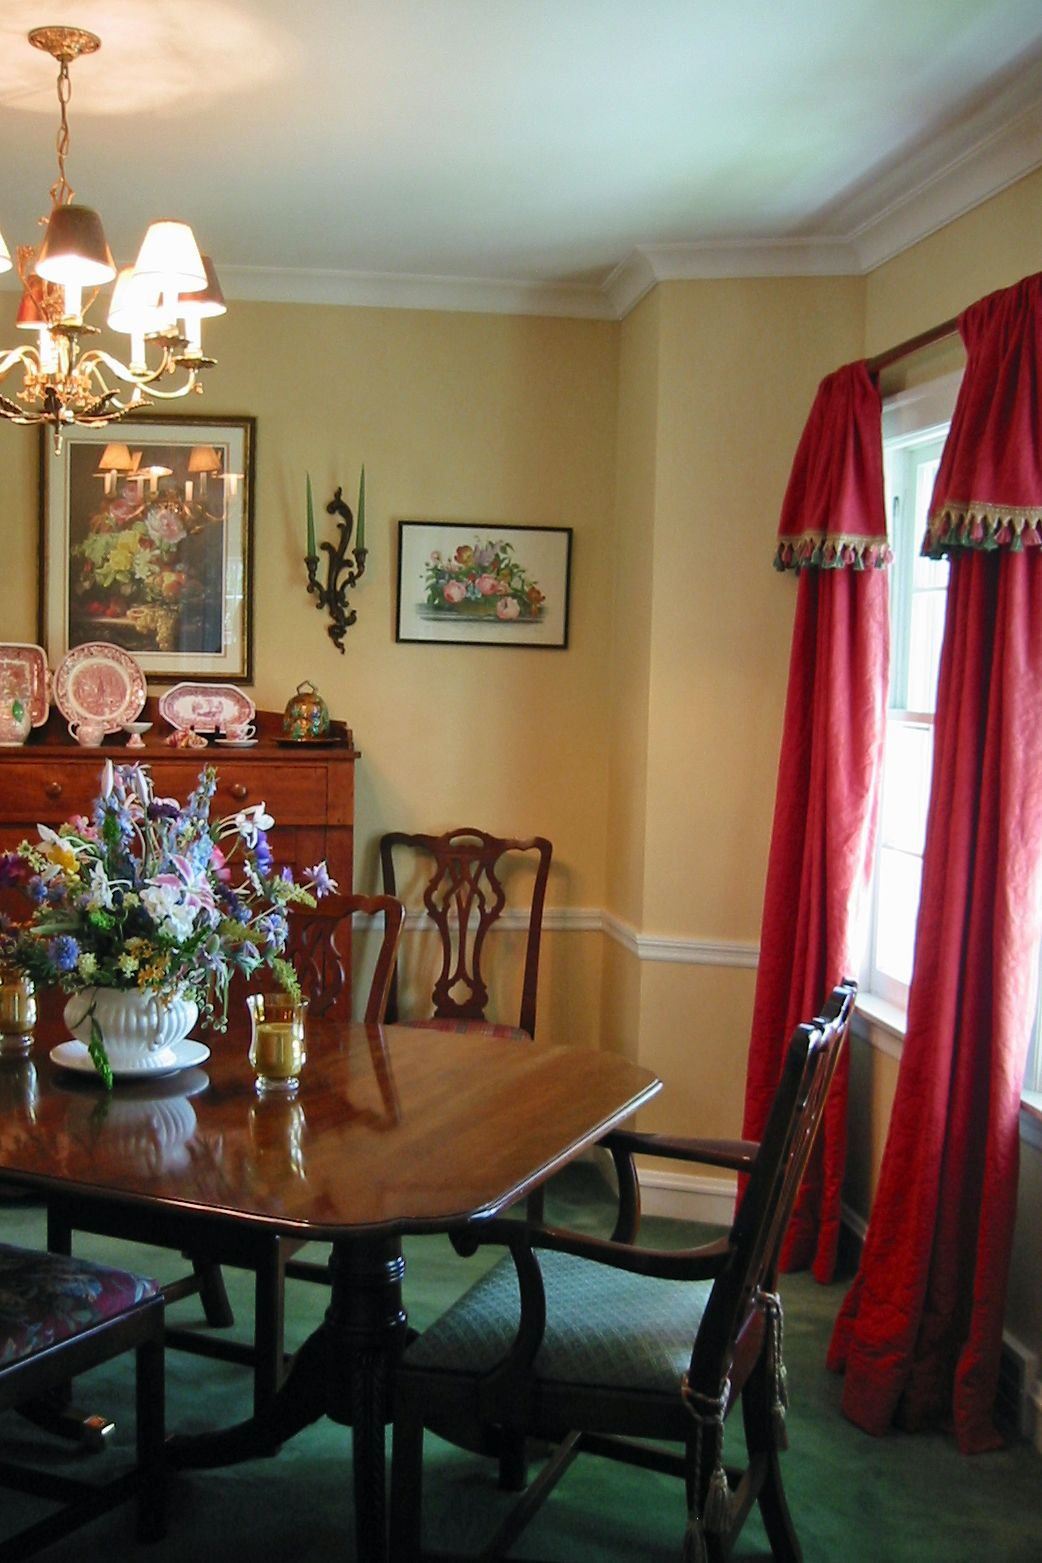 Cool Vintage Dining Room Wall Paint Color Ideas With Soft Yellow Overlooking Red Vertical Curtain